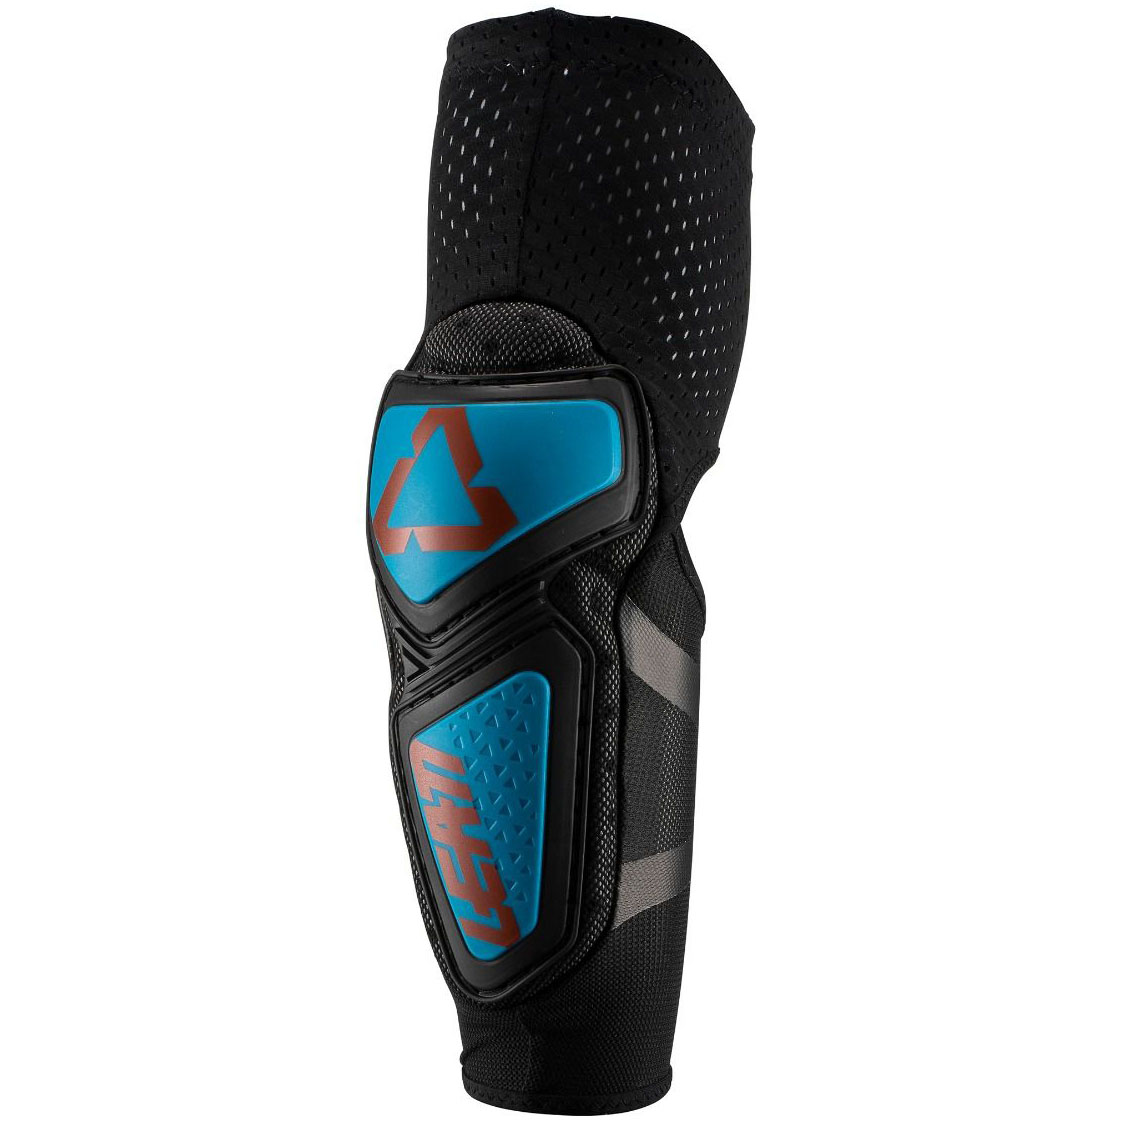 Leatt - 2019 Contour Elbow Guard Fuel/Black защита локтей, синяя